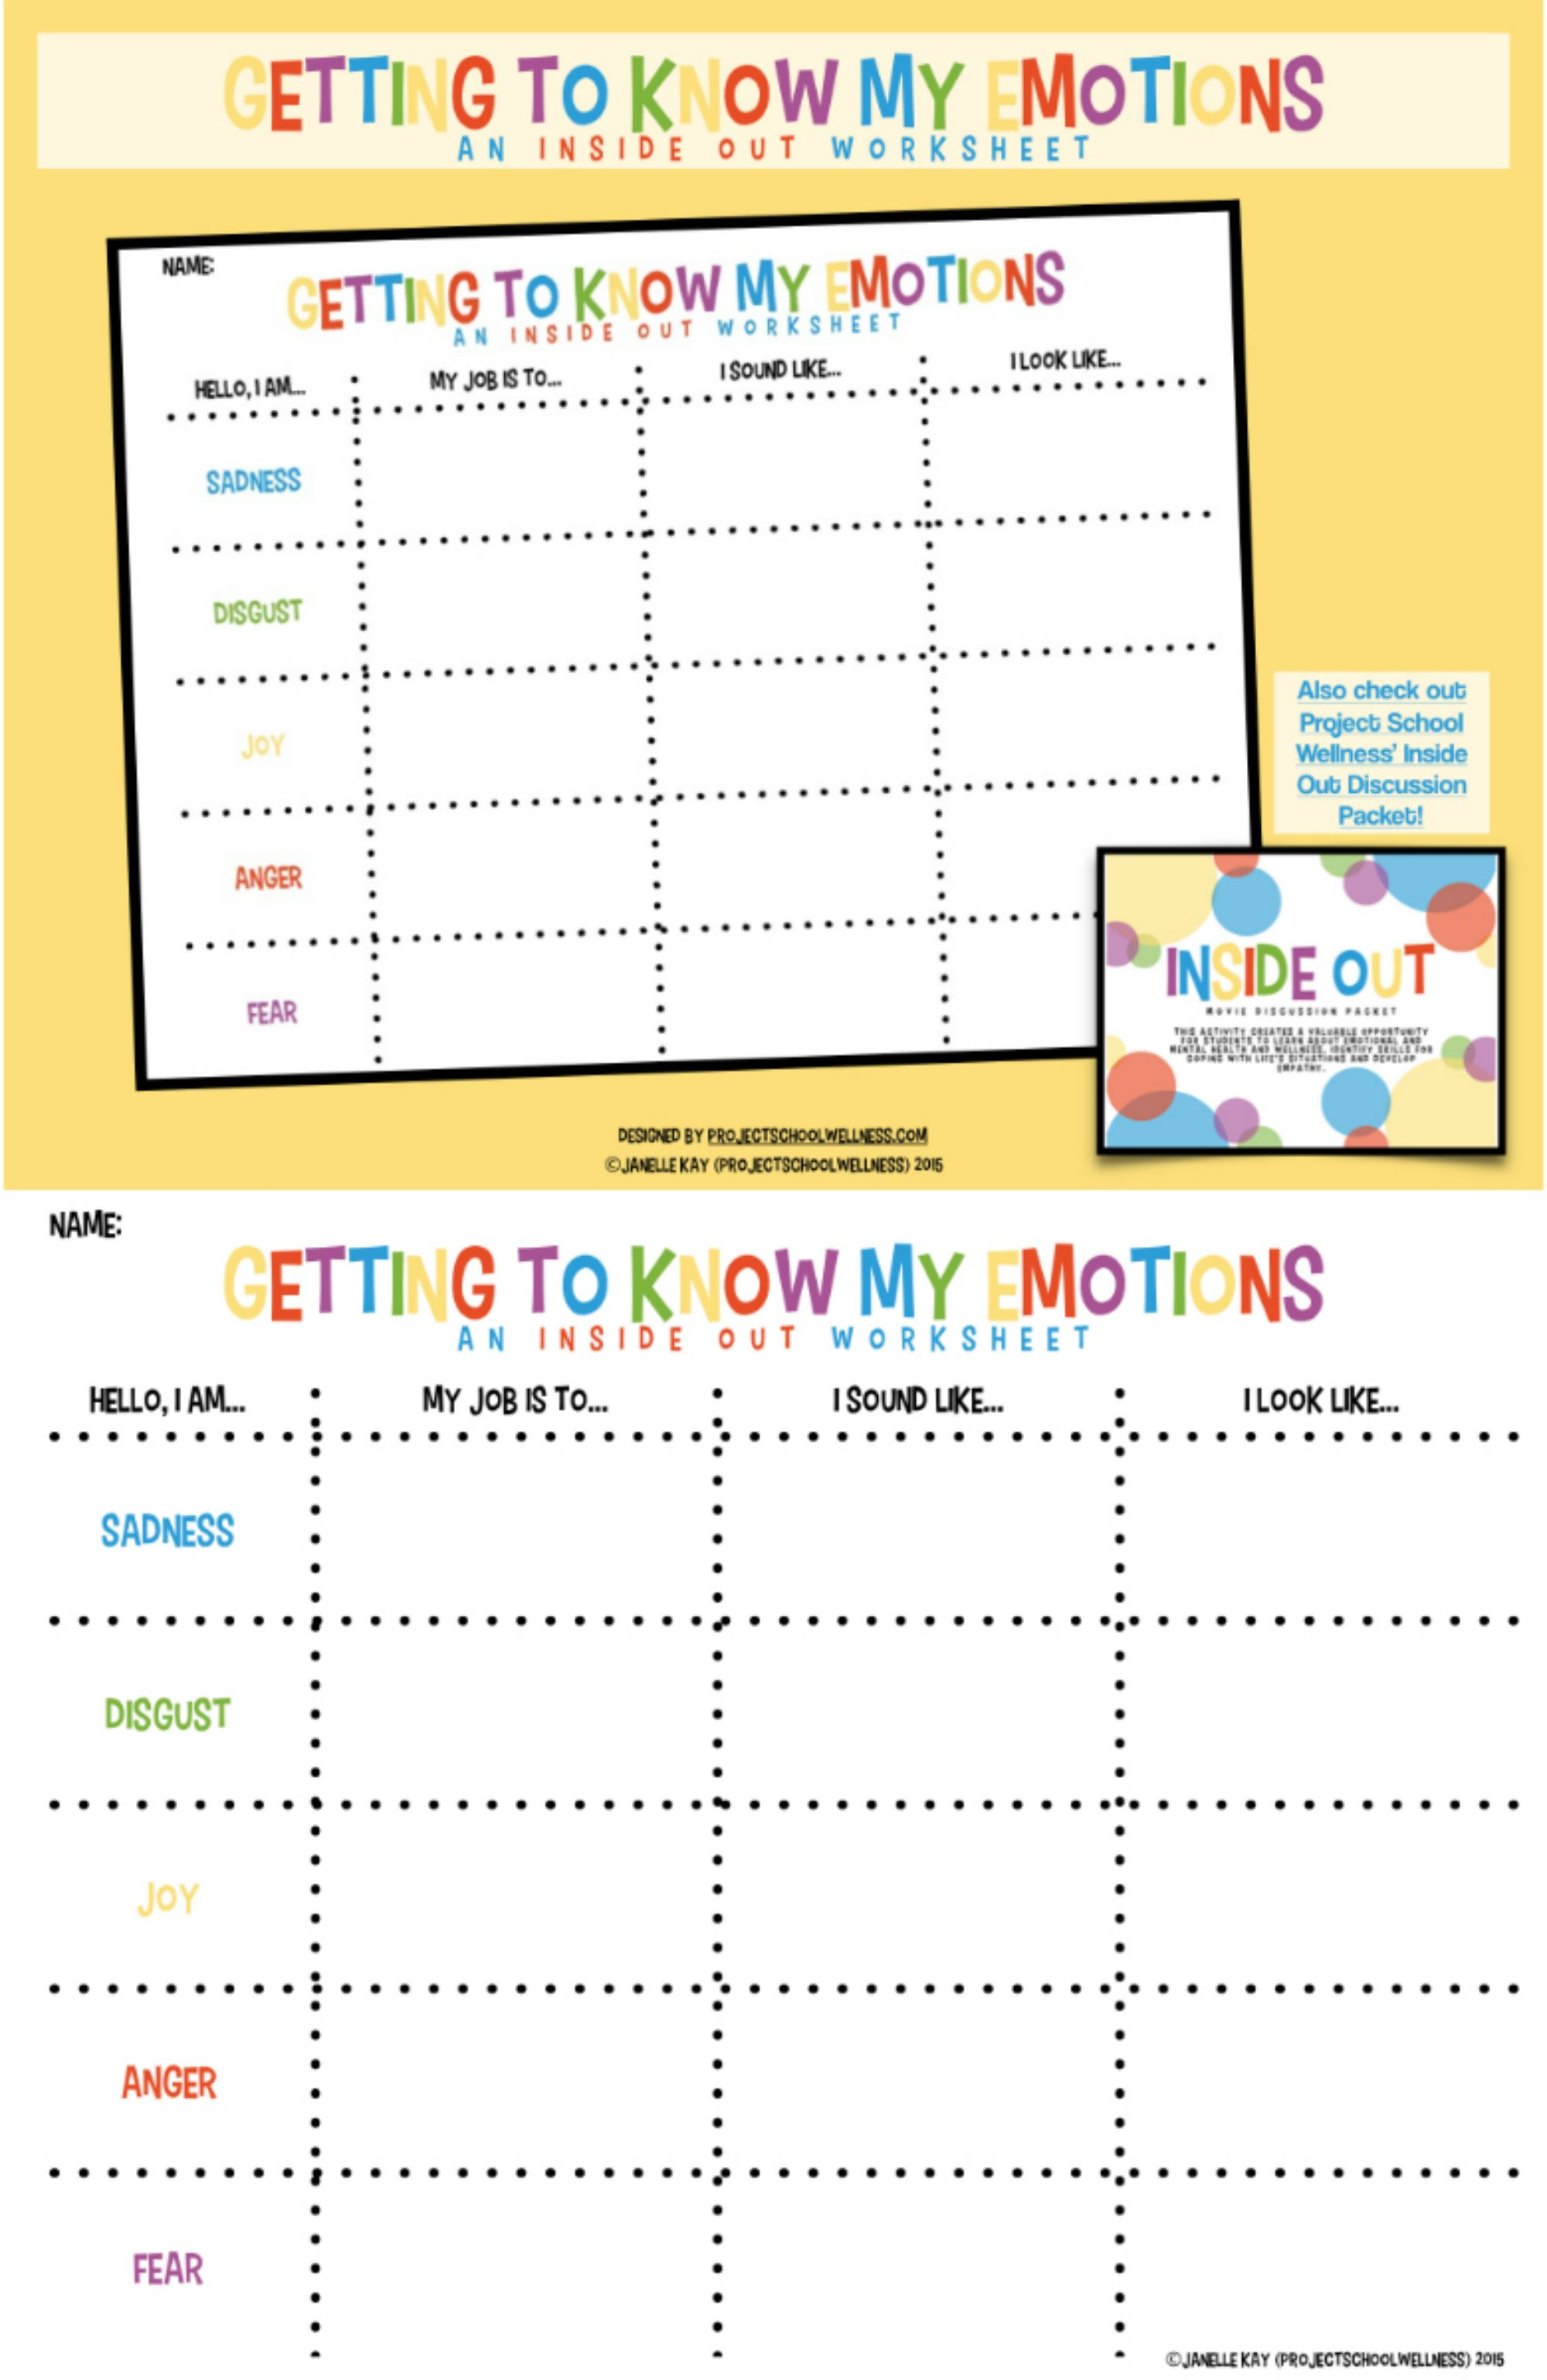 Teach Kids About Emotional Intelligence Using Inside Out This Worksheet Breaks Down Our Basic Emotions And Teaches Kids About Expressing And Identifying